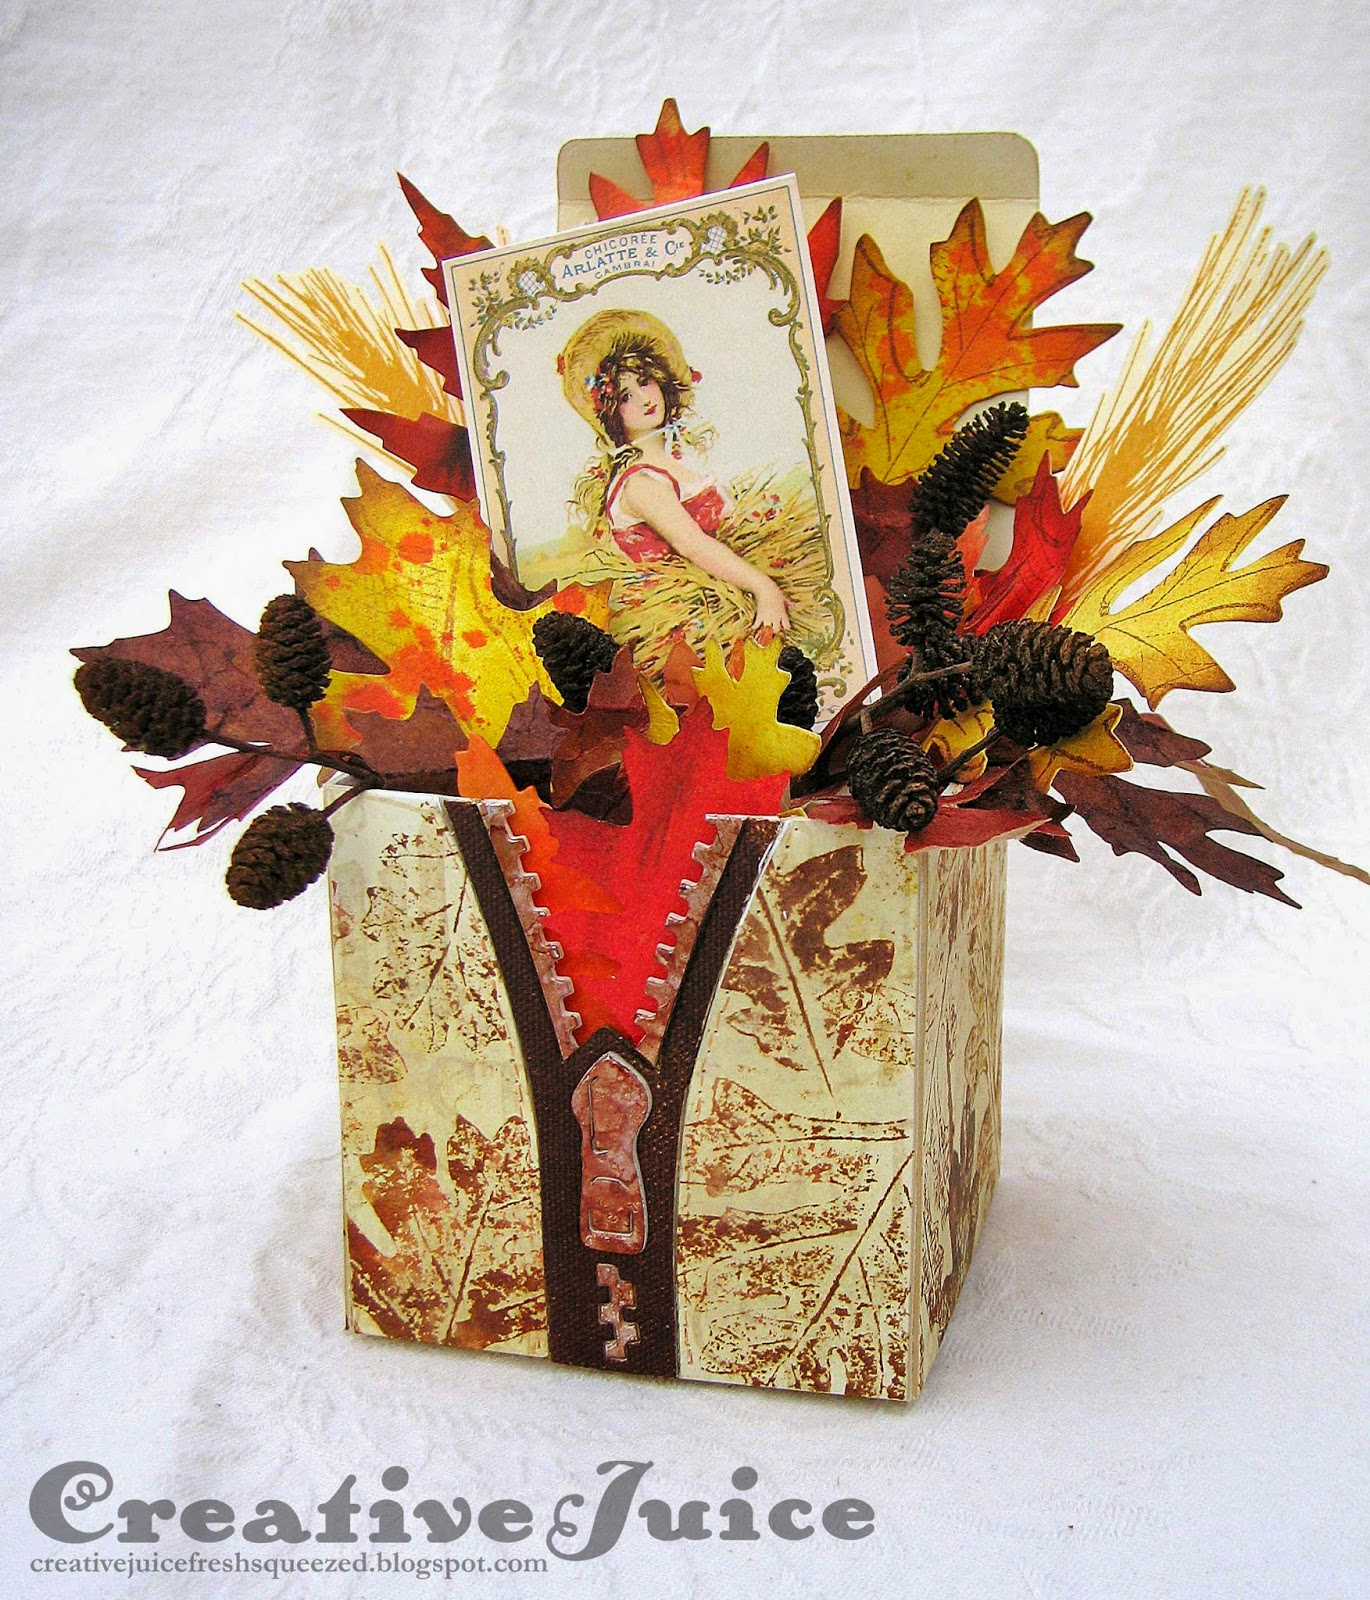 http://creativejuicefreshsqueezed.blogspot.com/2014/10/fall-atb-and-leaf-printing-tutorial.html